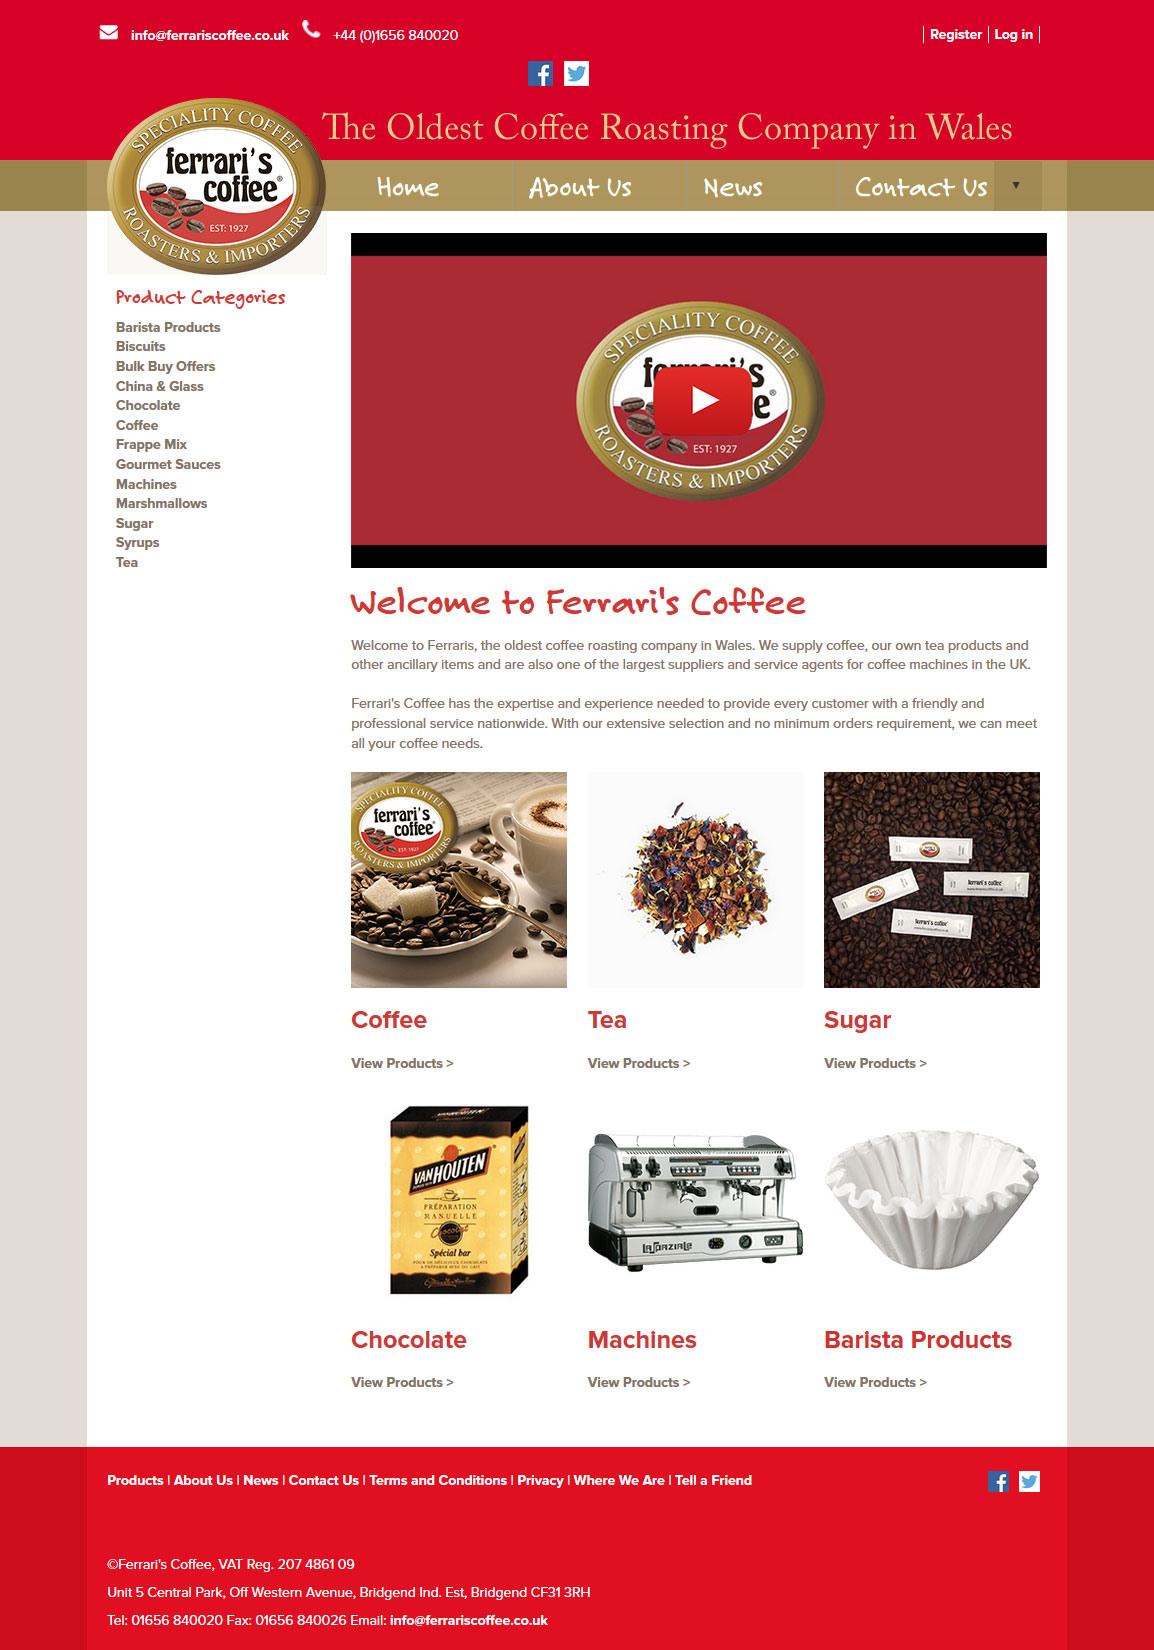 An image from Ferrari's Coffee website